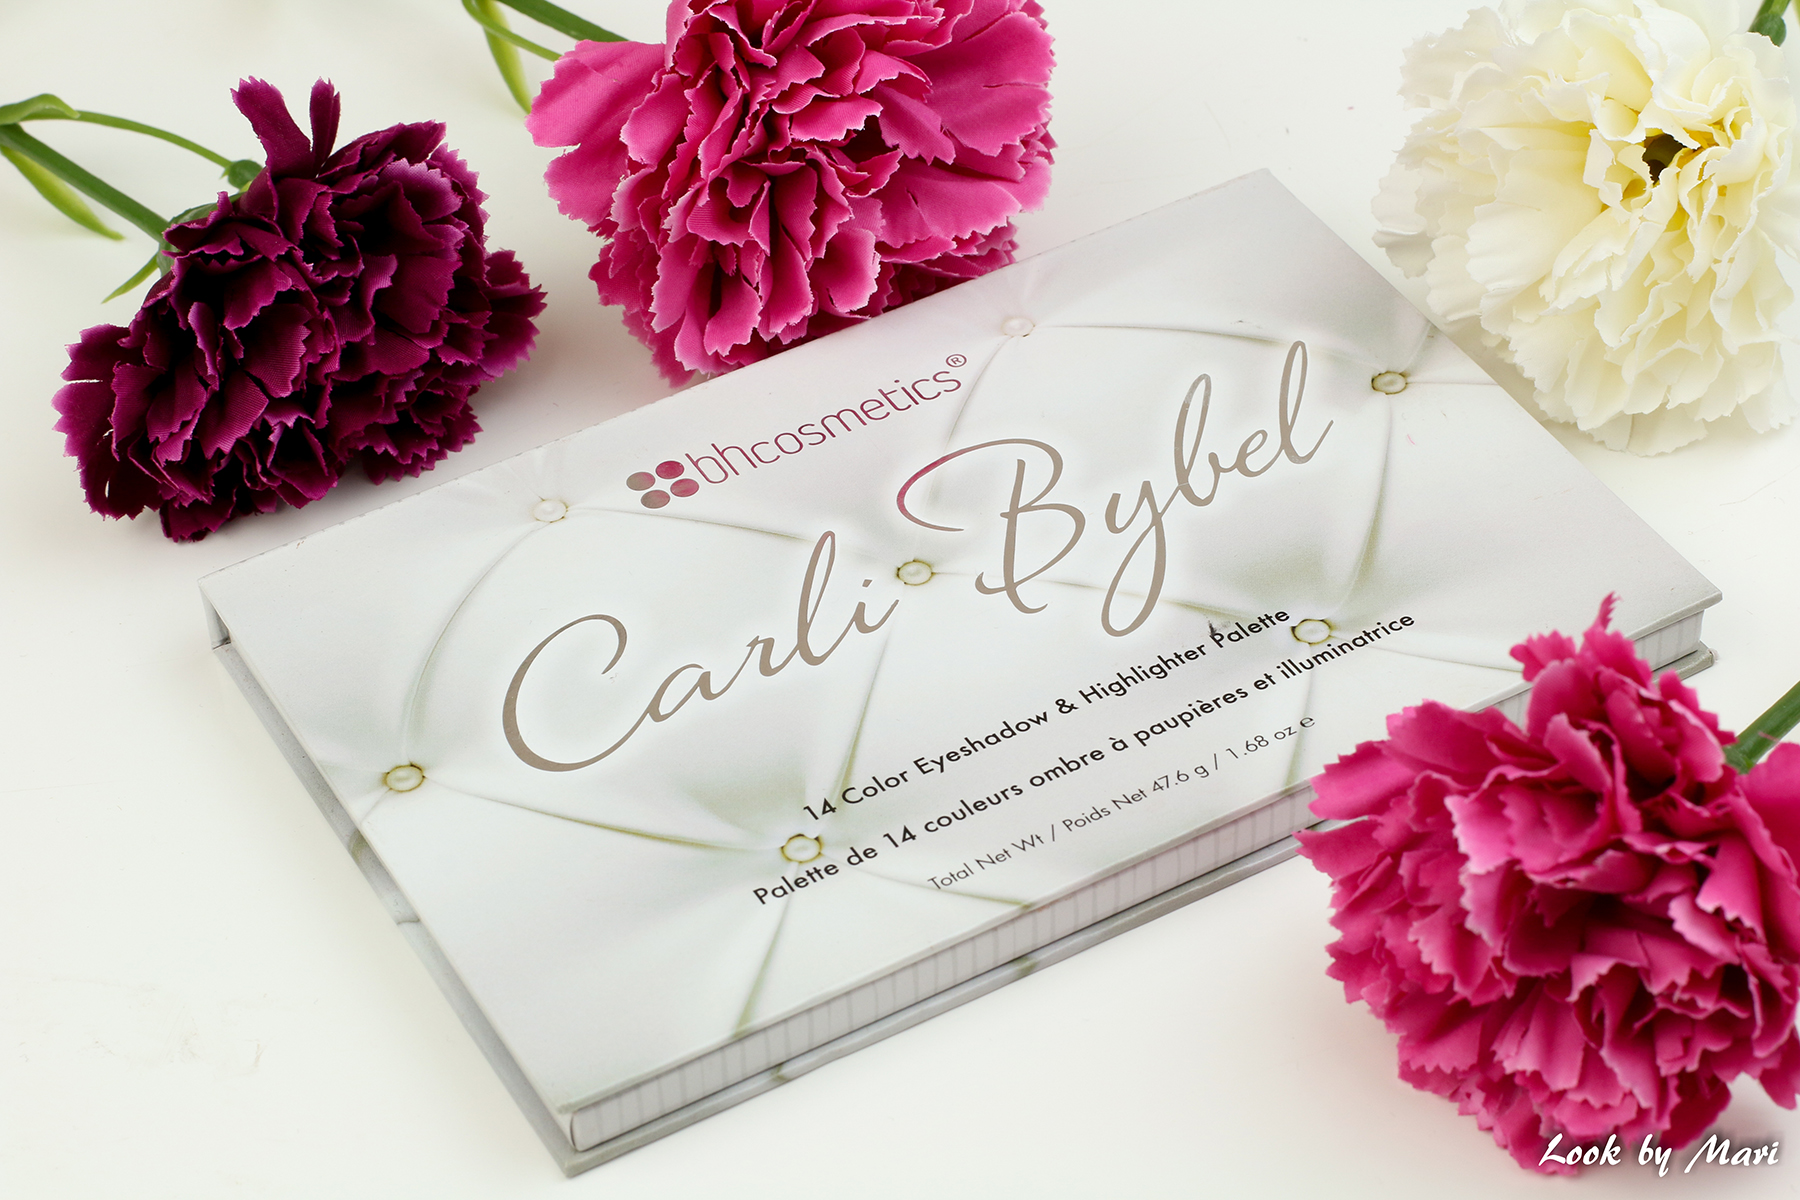 1 bh cosmetics x carli bybel 14 colors eyeshadow and highlighting palette review